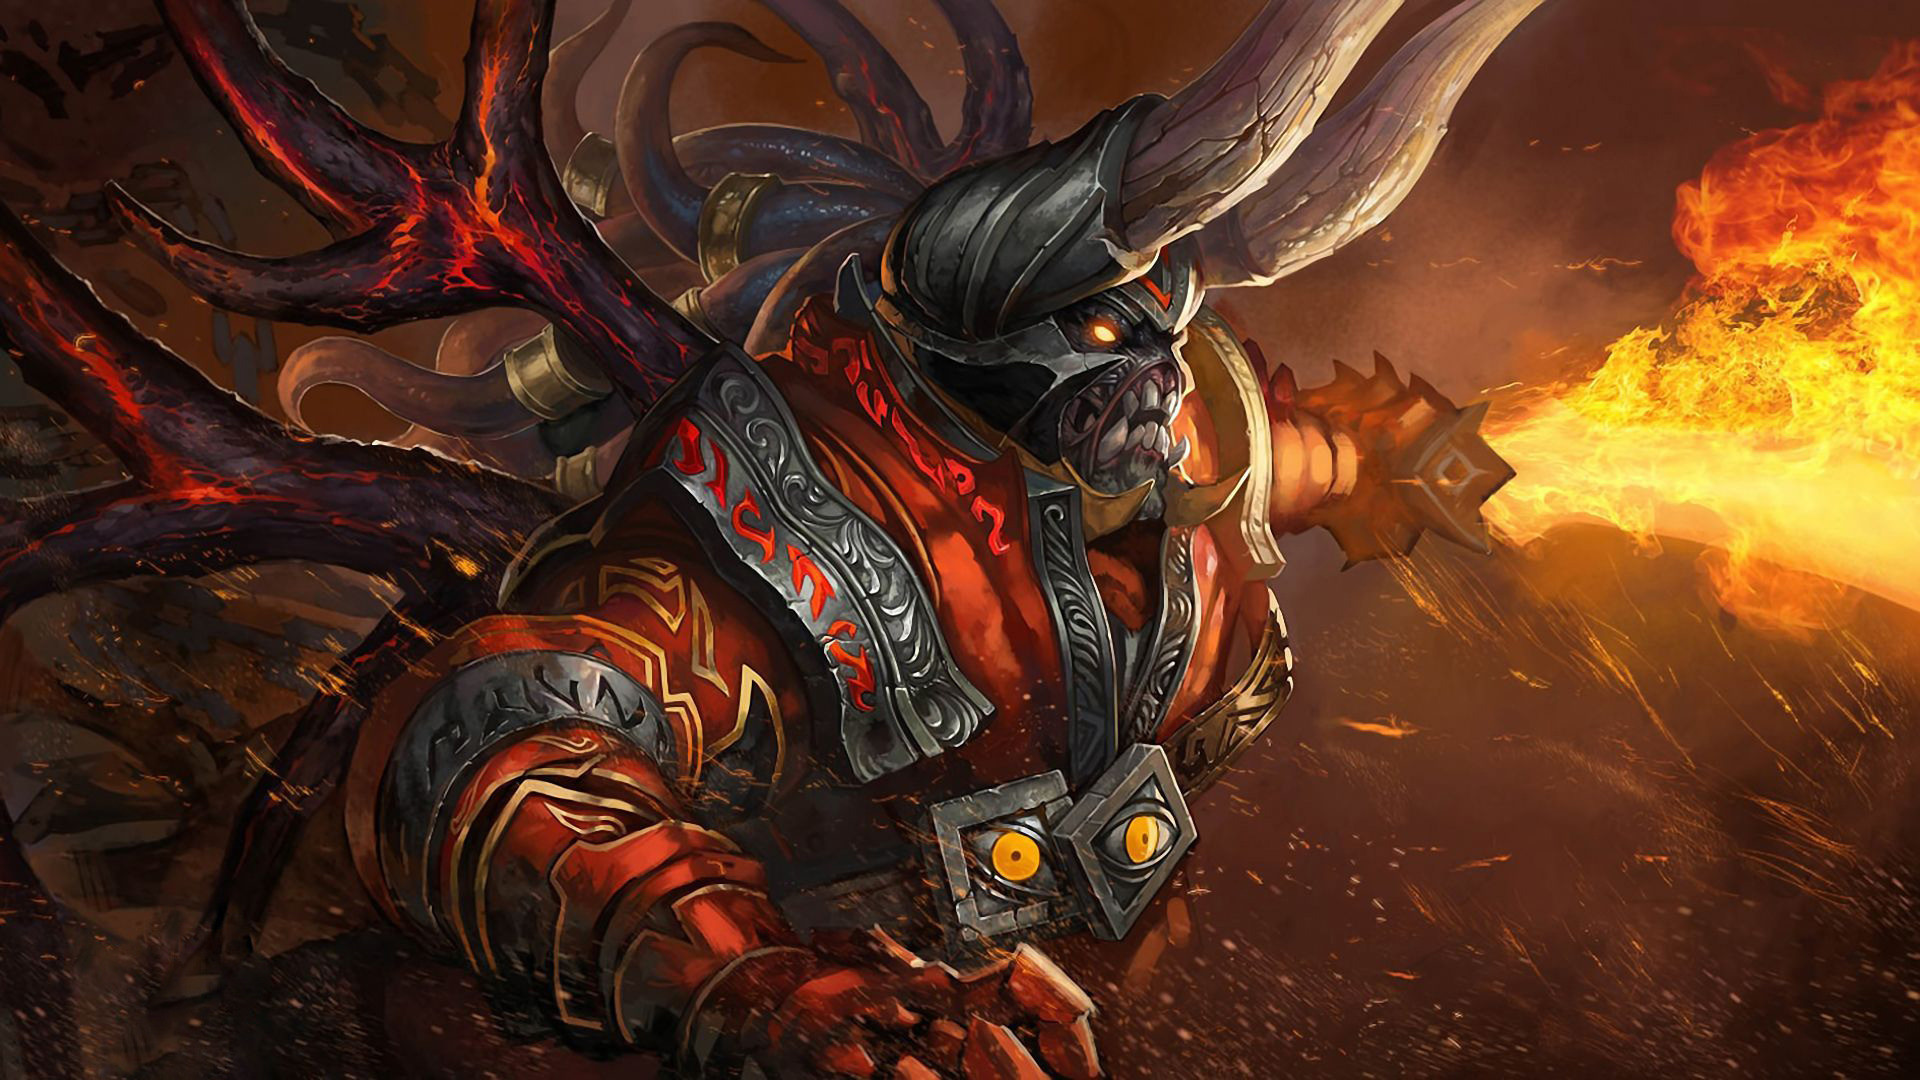 Dota 2 Pudge Images Is Cool Wallpapers | Ilustraciones | Pinterest | Free  credit report and Wallpaper